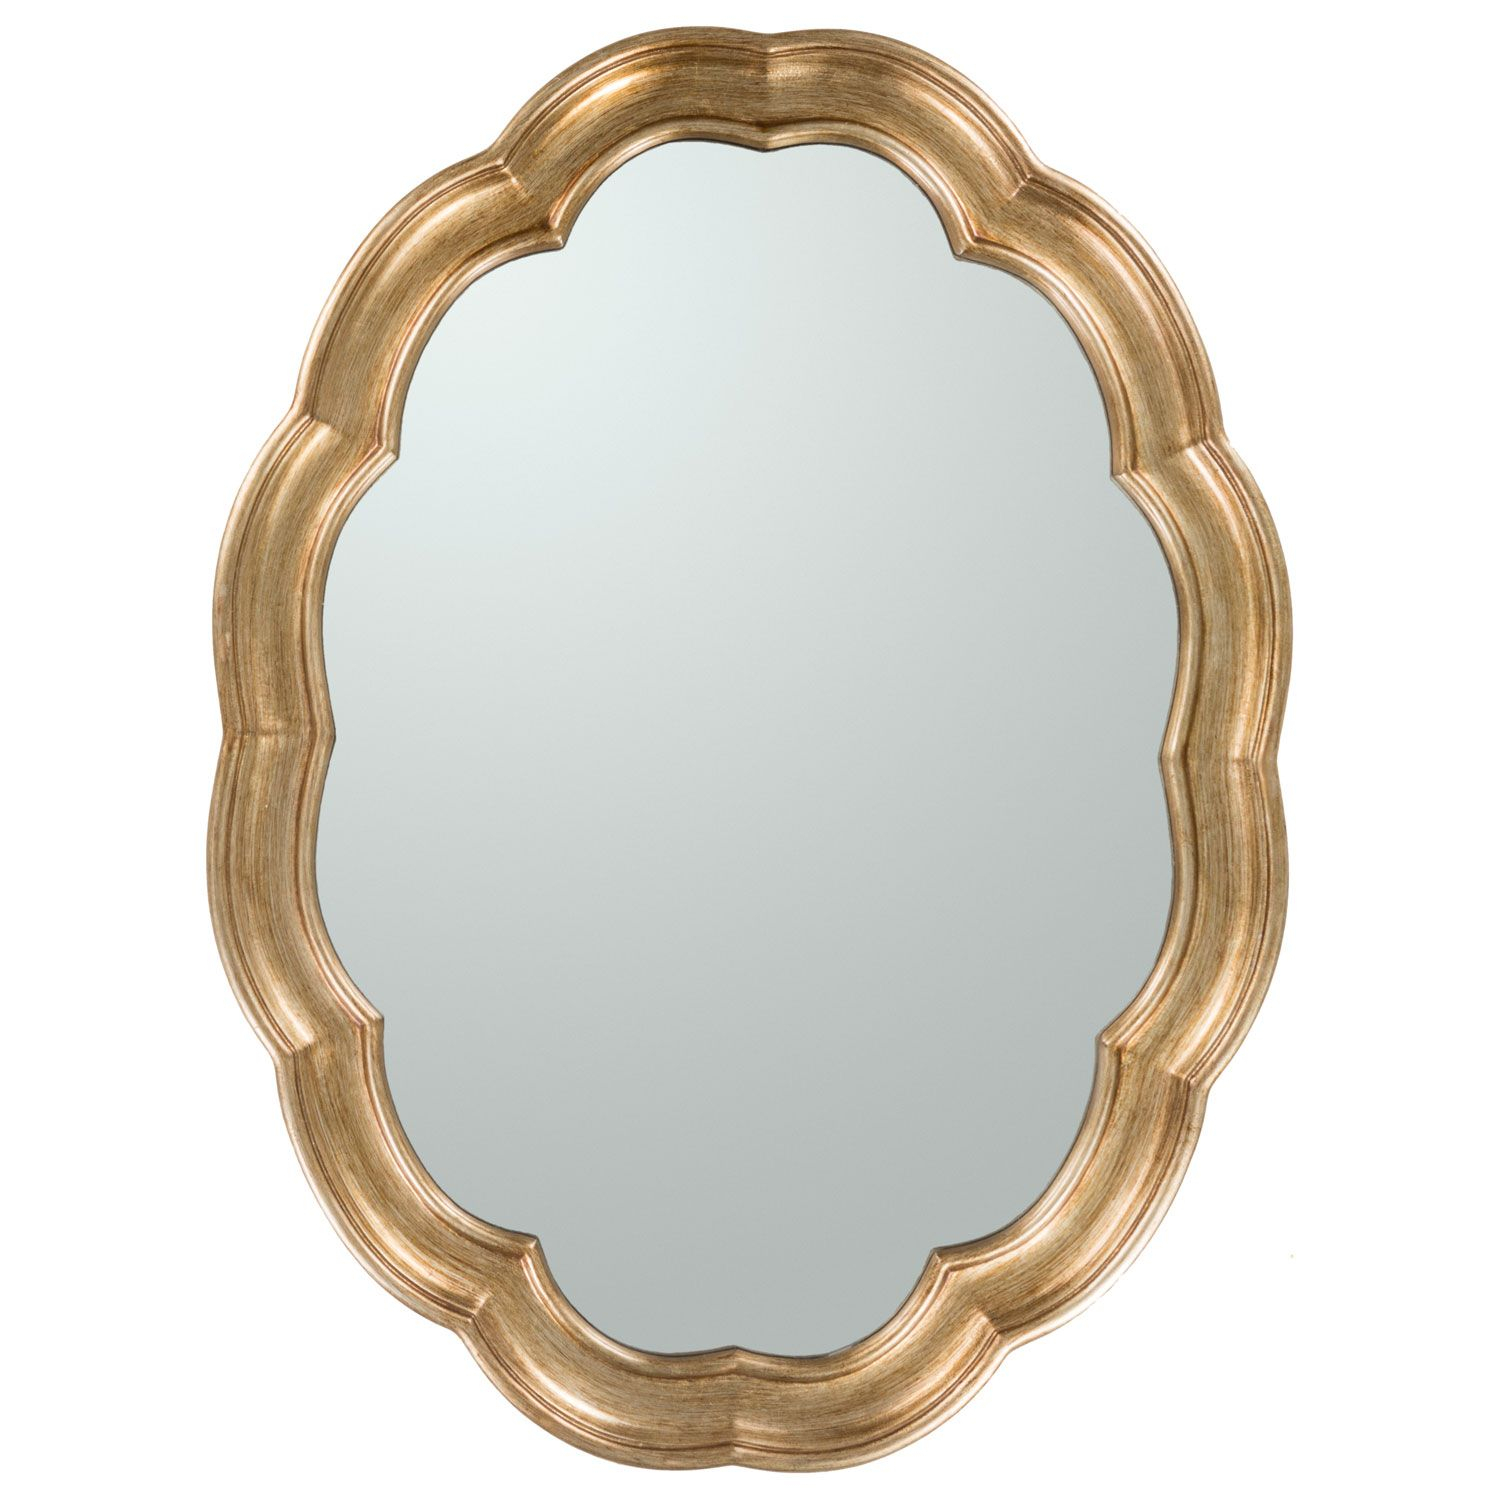 Surya Milburn Scallop Mirror Sumlb6051 #laylagrayce With Regard To Broadmeadow Glam Accent Wall Mirrors (View 6 of 20)